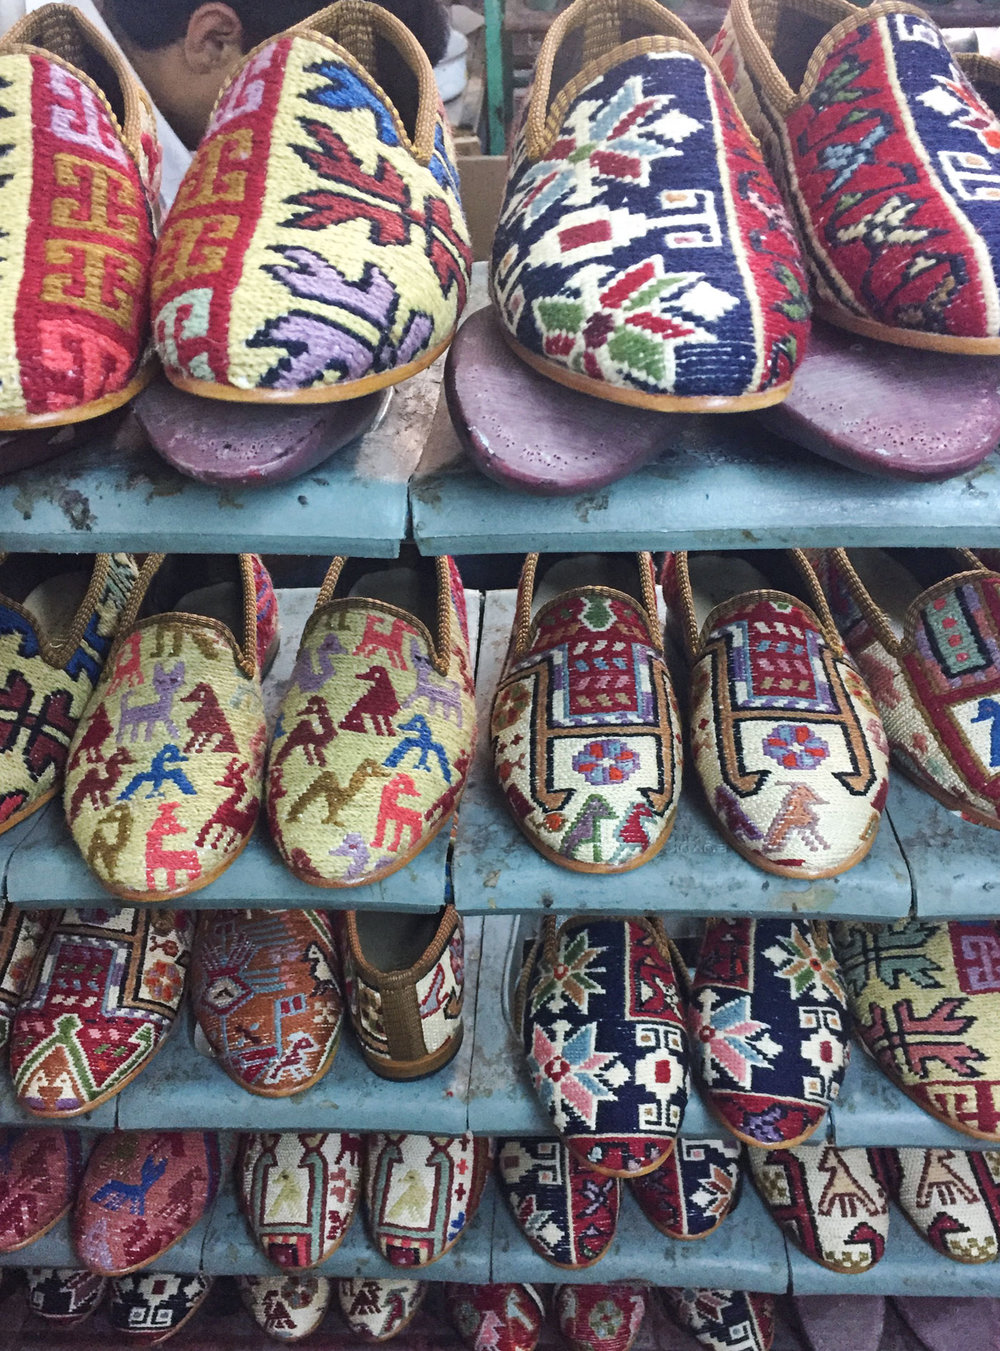 Kilim shoes, carpet shoes, rug shoes, loafers, smokings shoes, turkey shoes, kilims, turkey, istanbul